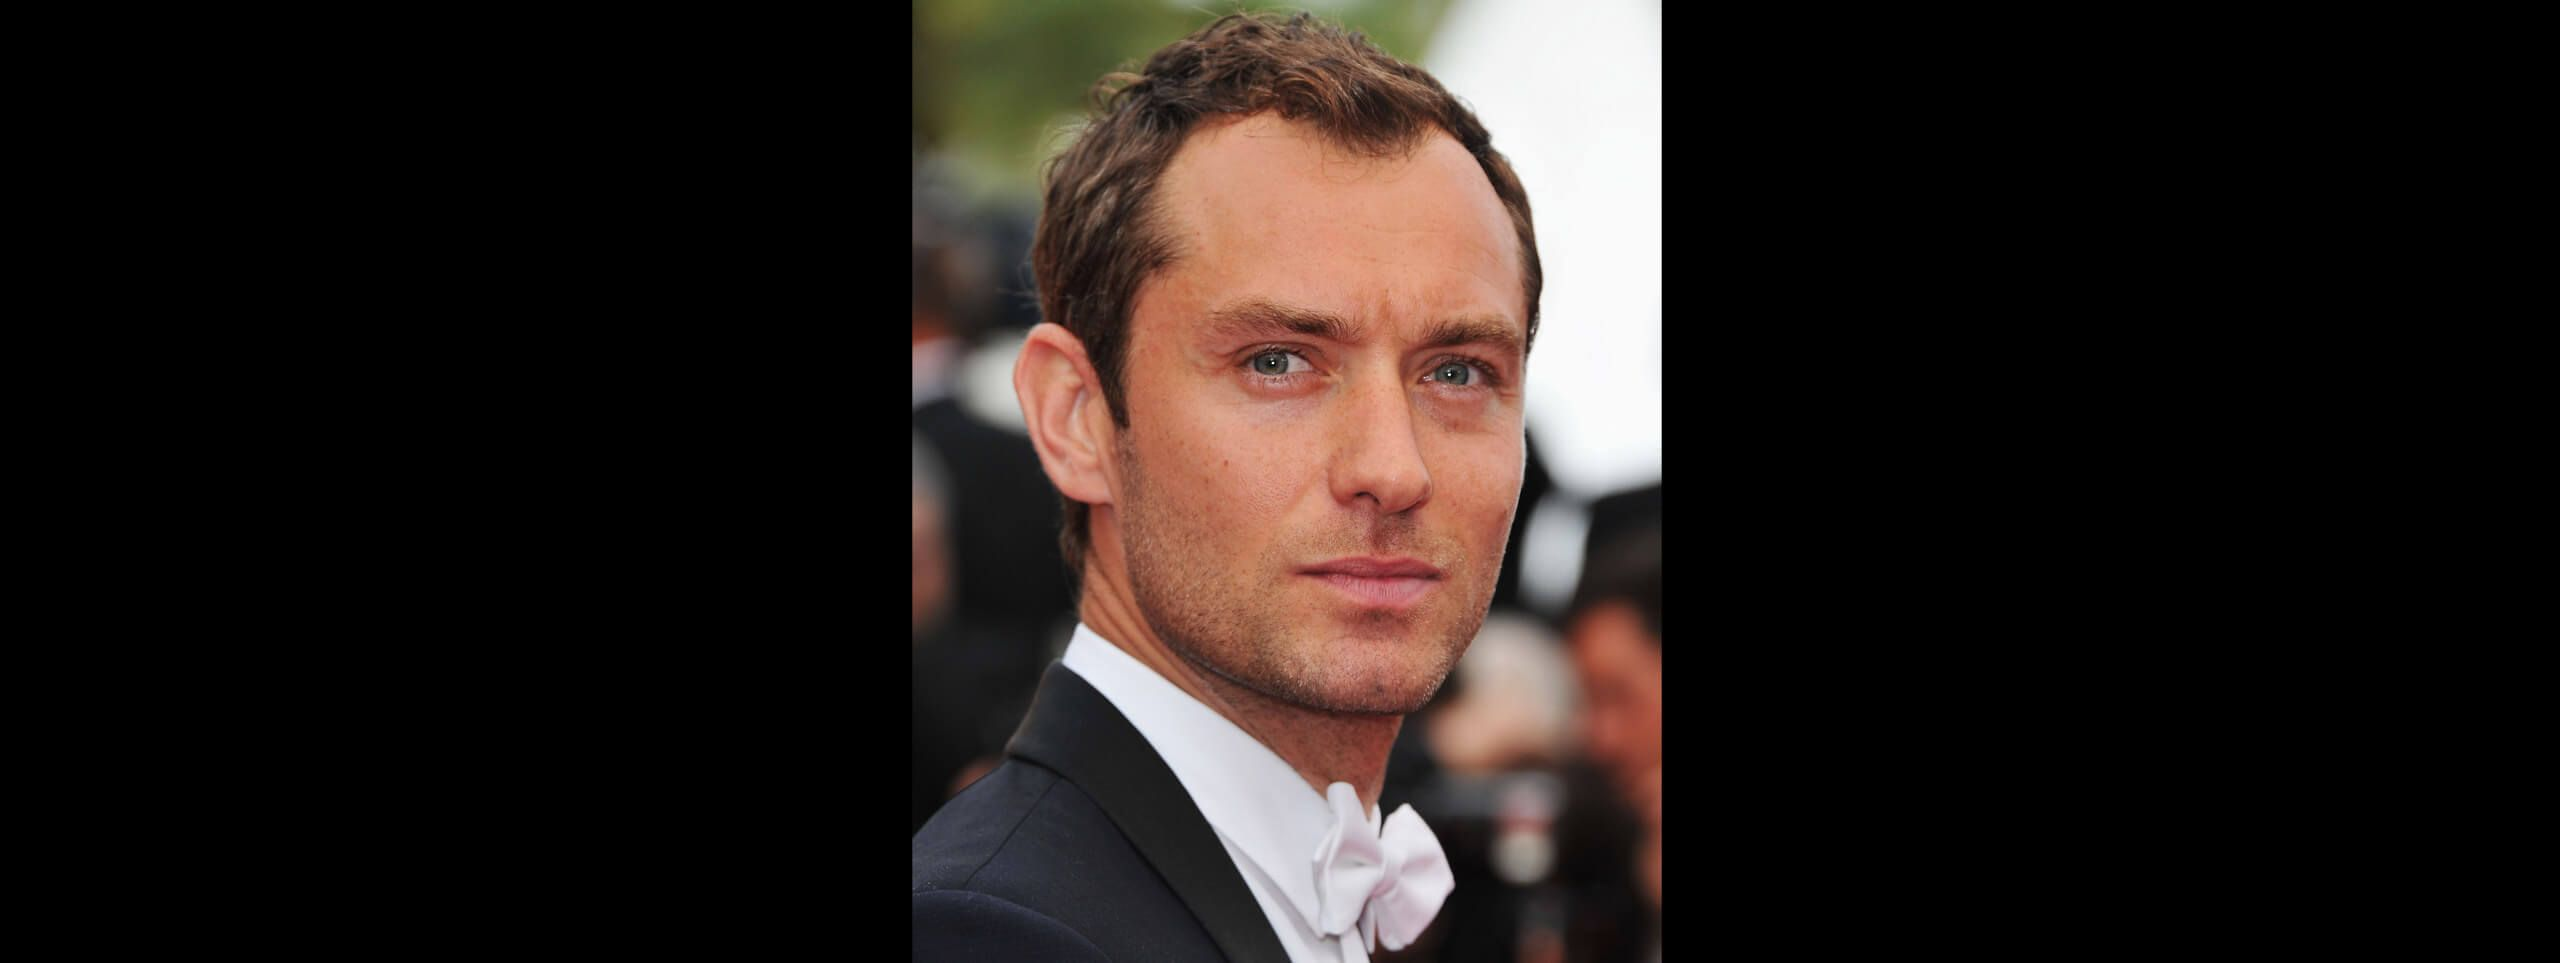 Jude Law coupe courte